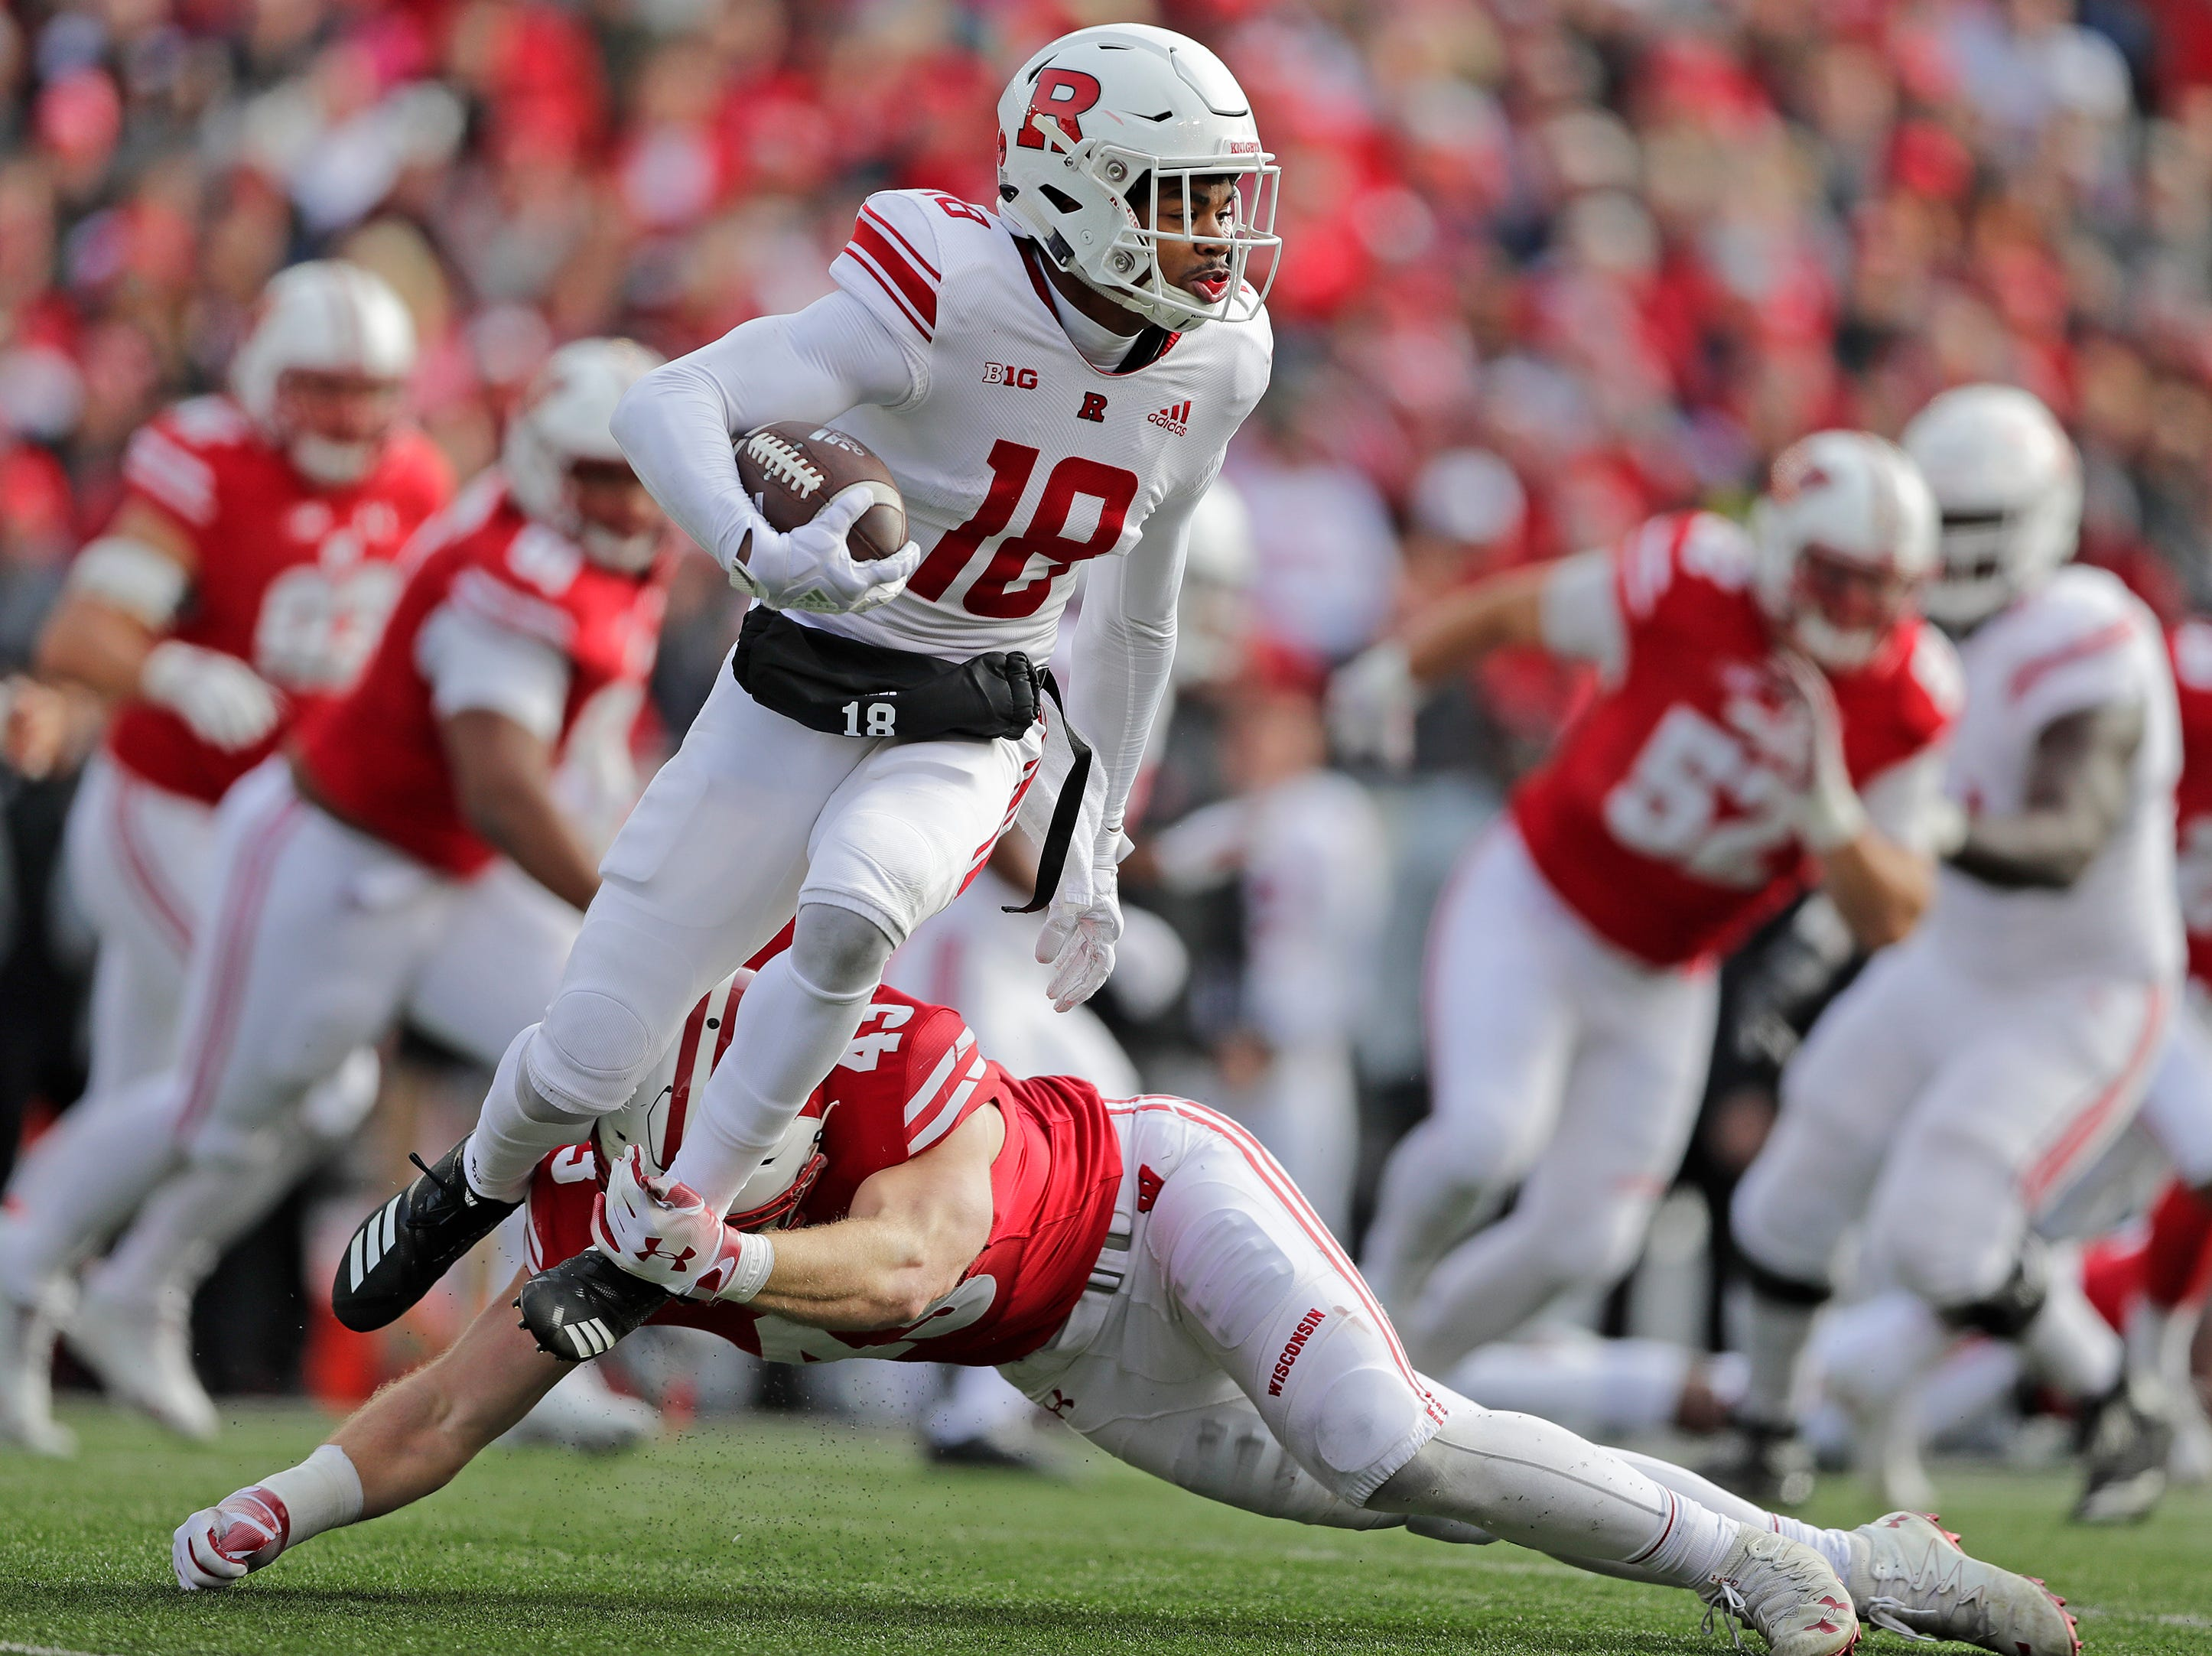 Wisconsin Badgers linebacker Ryan Connelly (43) tackles Rutgers Scarlet Knights wide receiver Bo Melton (18) in the third quarter of a Big Ten football game at Camp Randall Stadium on Saturday, November 3, 2018 in Madison, Wis.Adam Wesley/USA TODAY NETWORK-Wisconsin